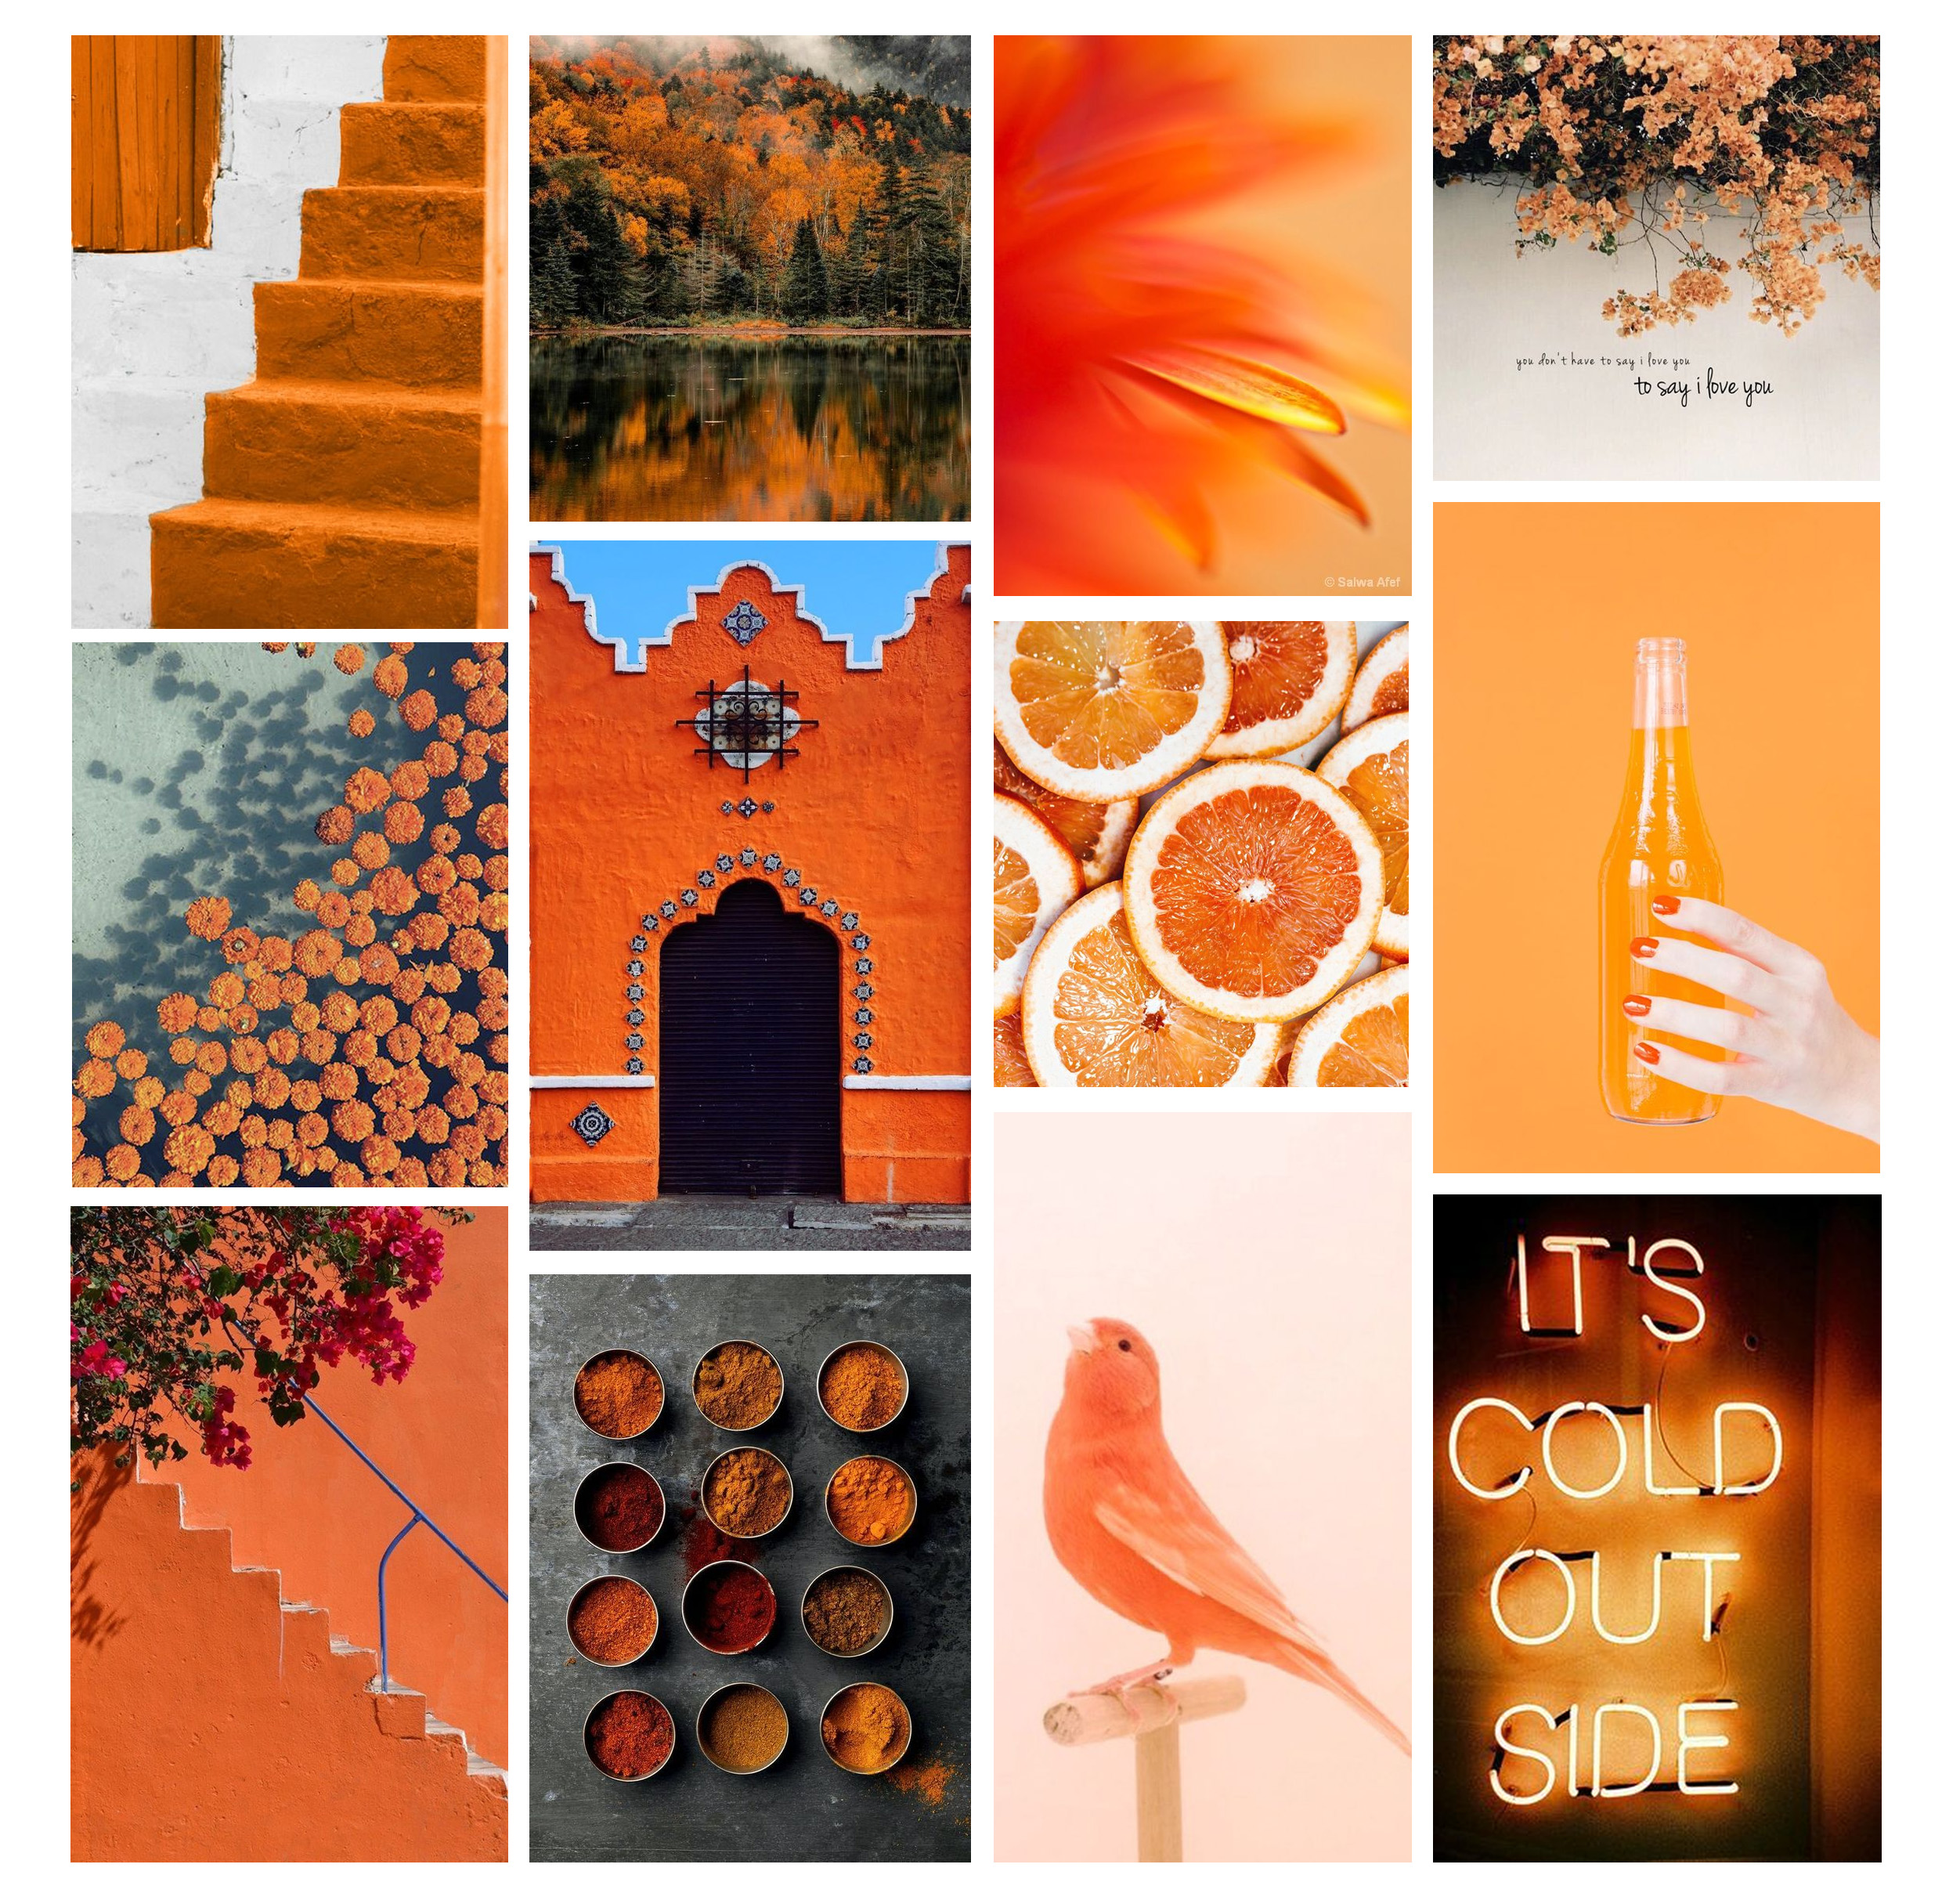 Psychologie des couleurs : le orange